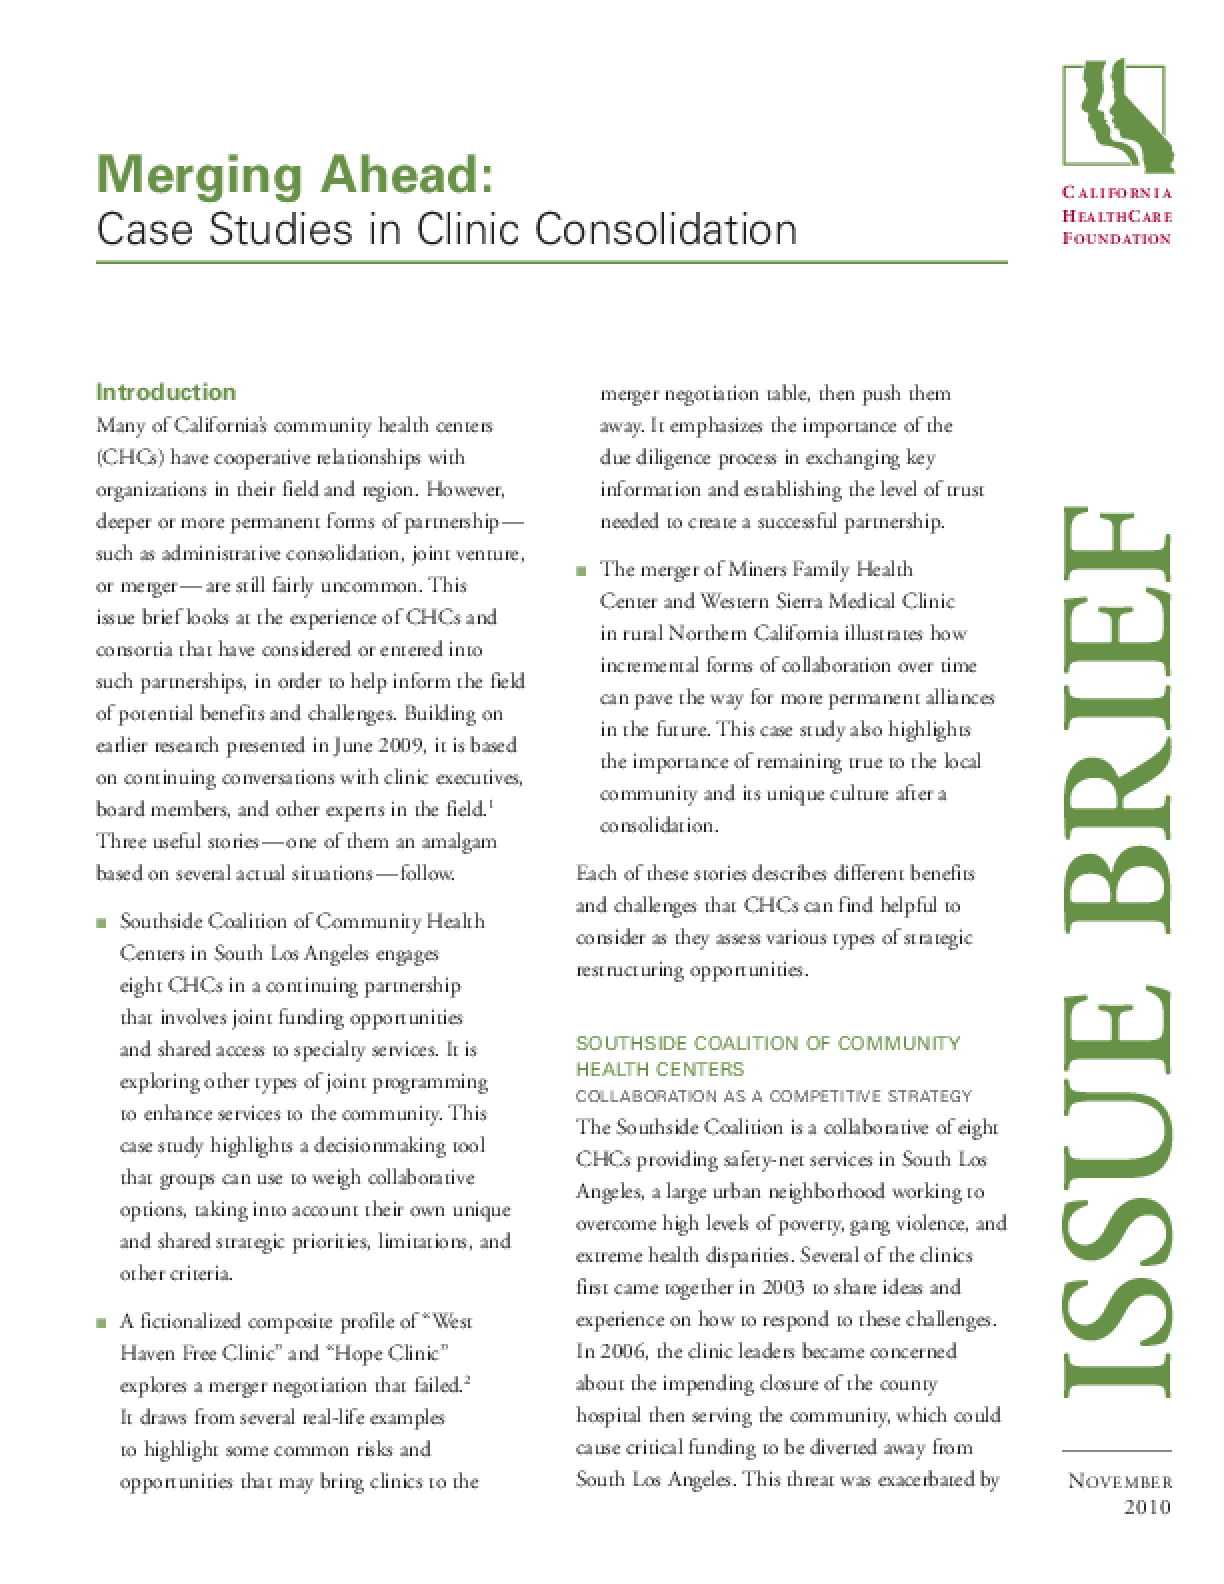 Merging Ahead: Case Studies in Clinic Consolidation